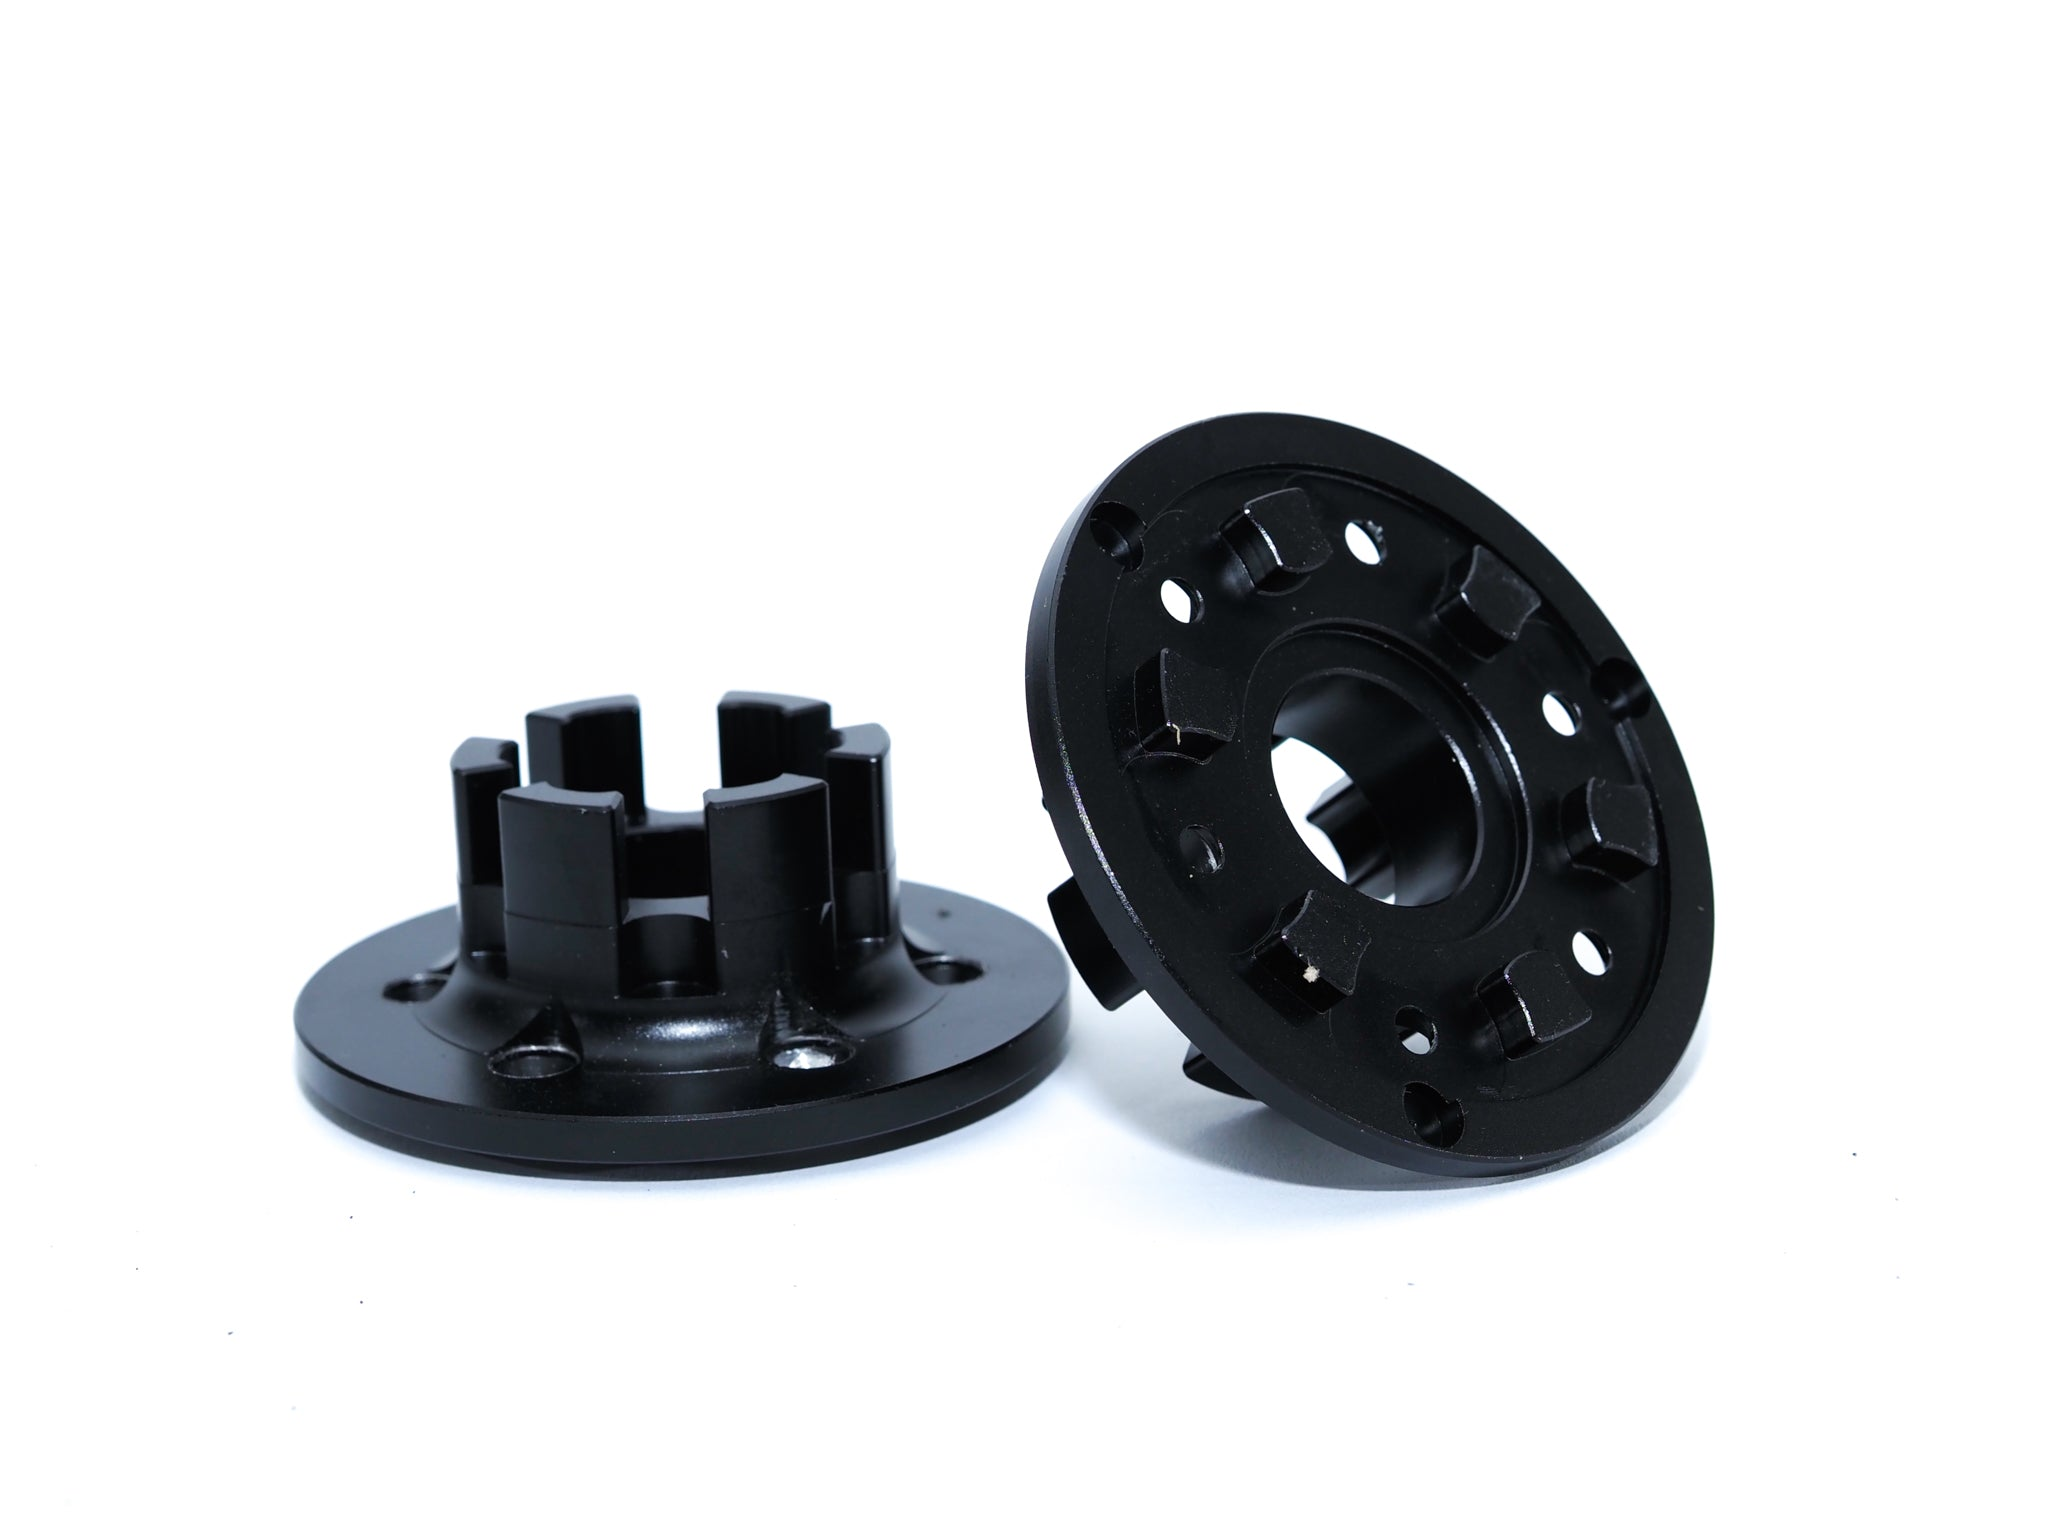 KEGEL or ABEC Adaptor for Direct Drive Motor - ESK8 Europe